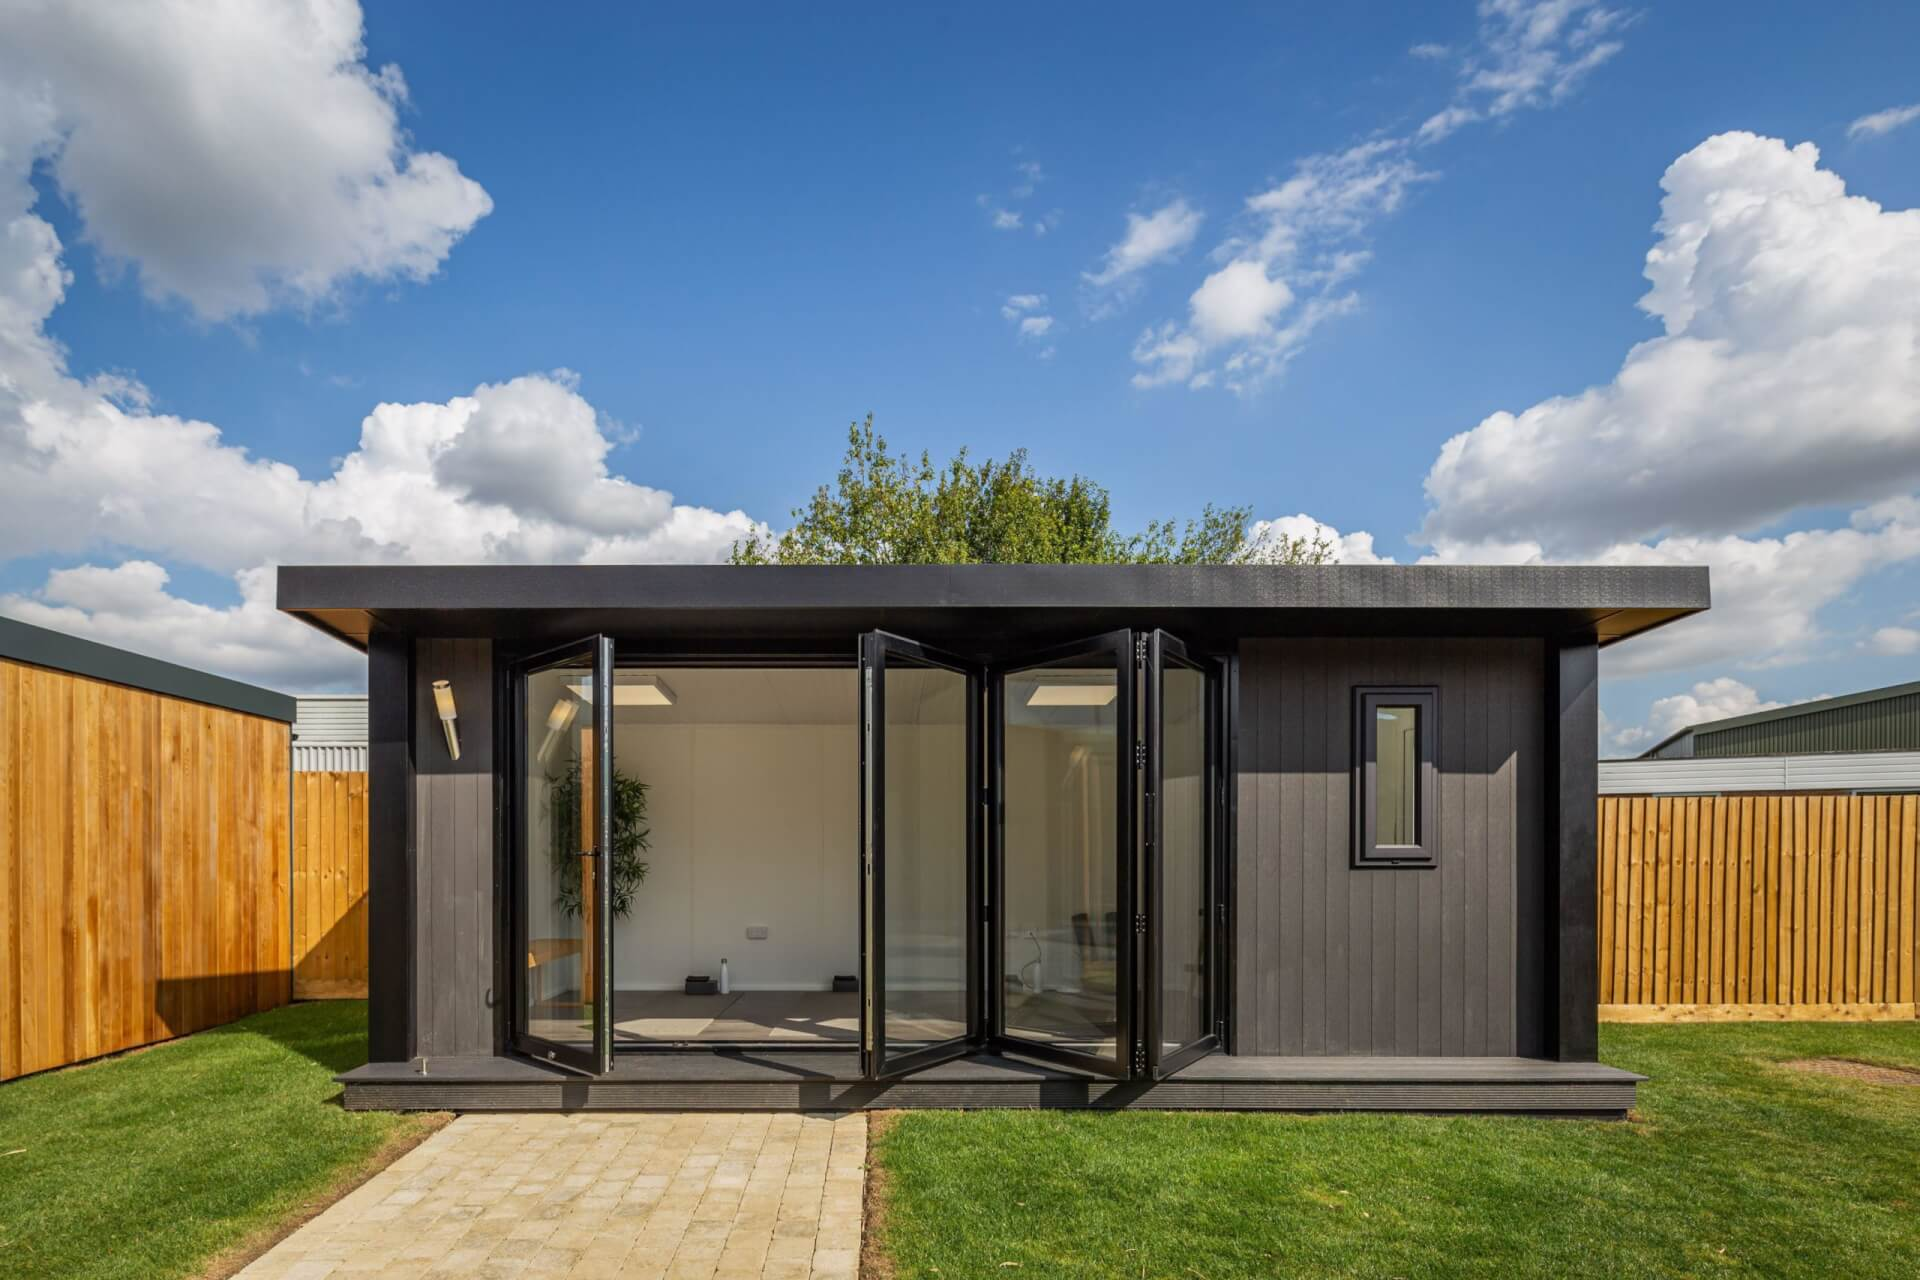 garden yoga studio with bi-fold doors